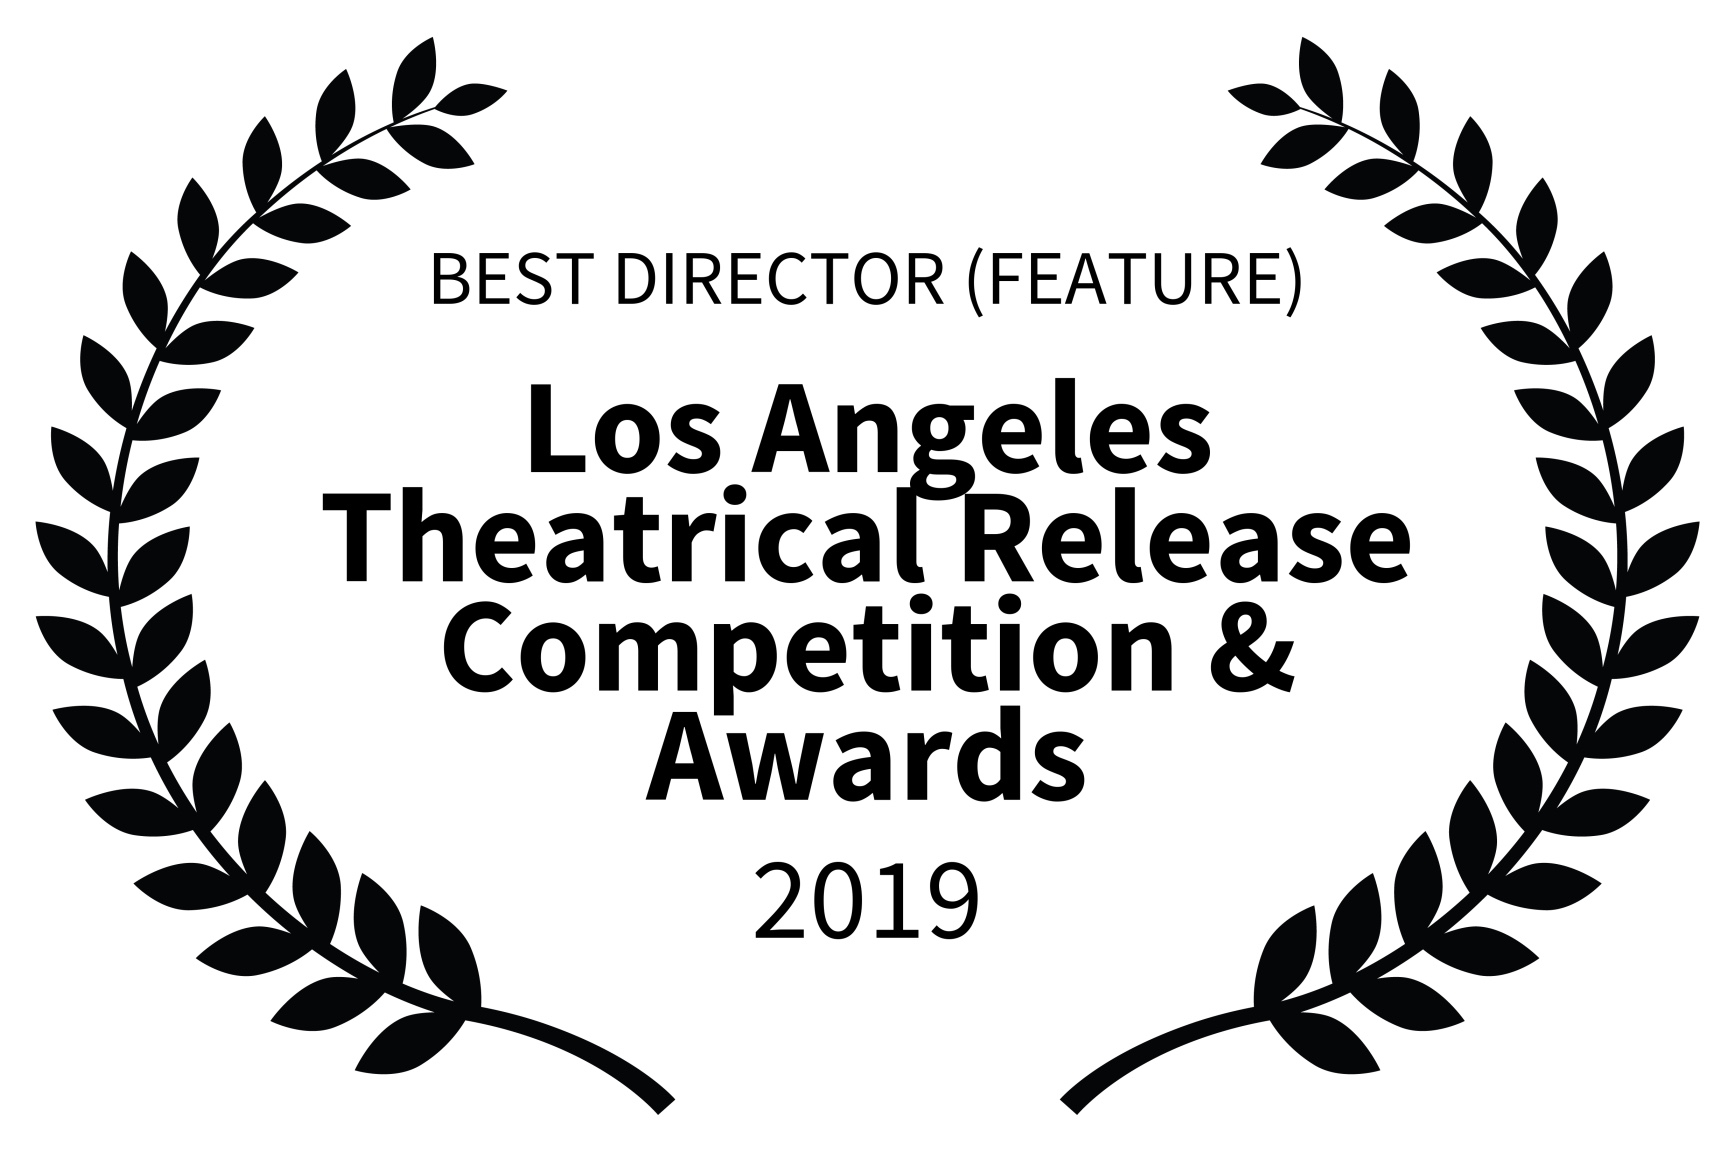 LA Theatrical Release Competition & Awards